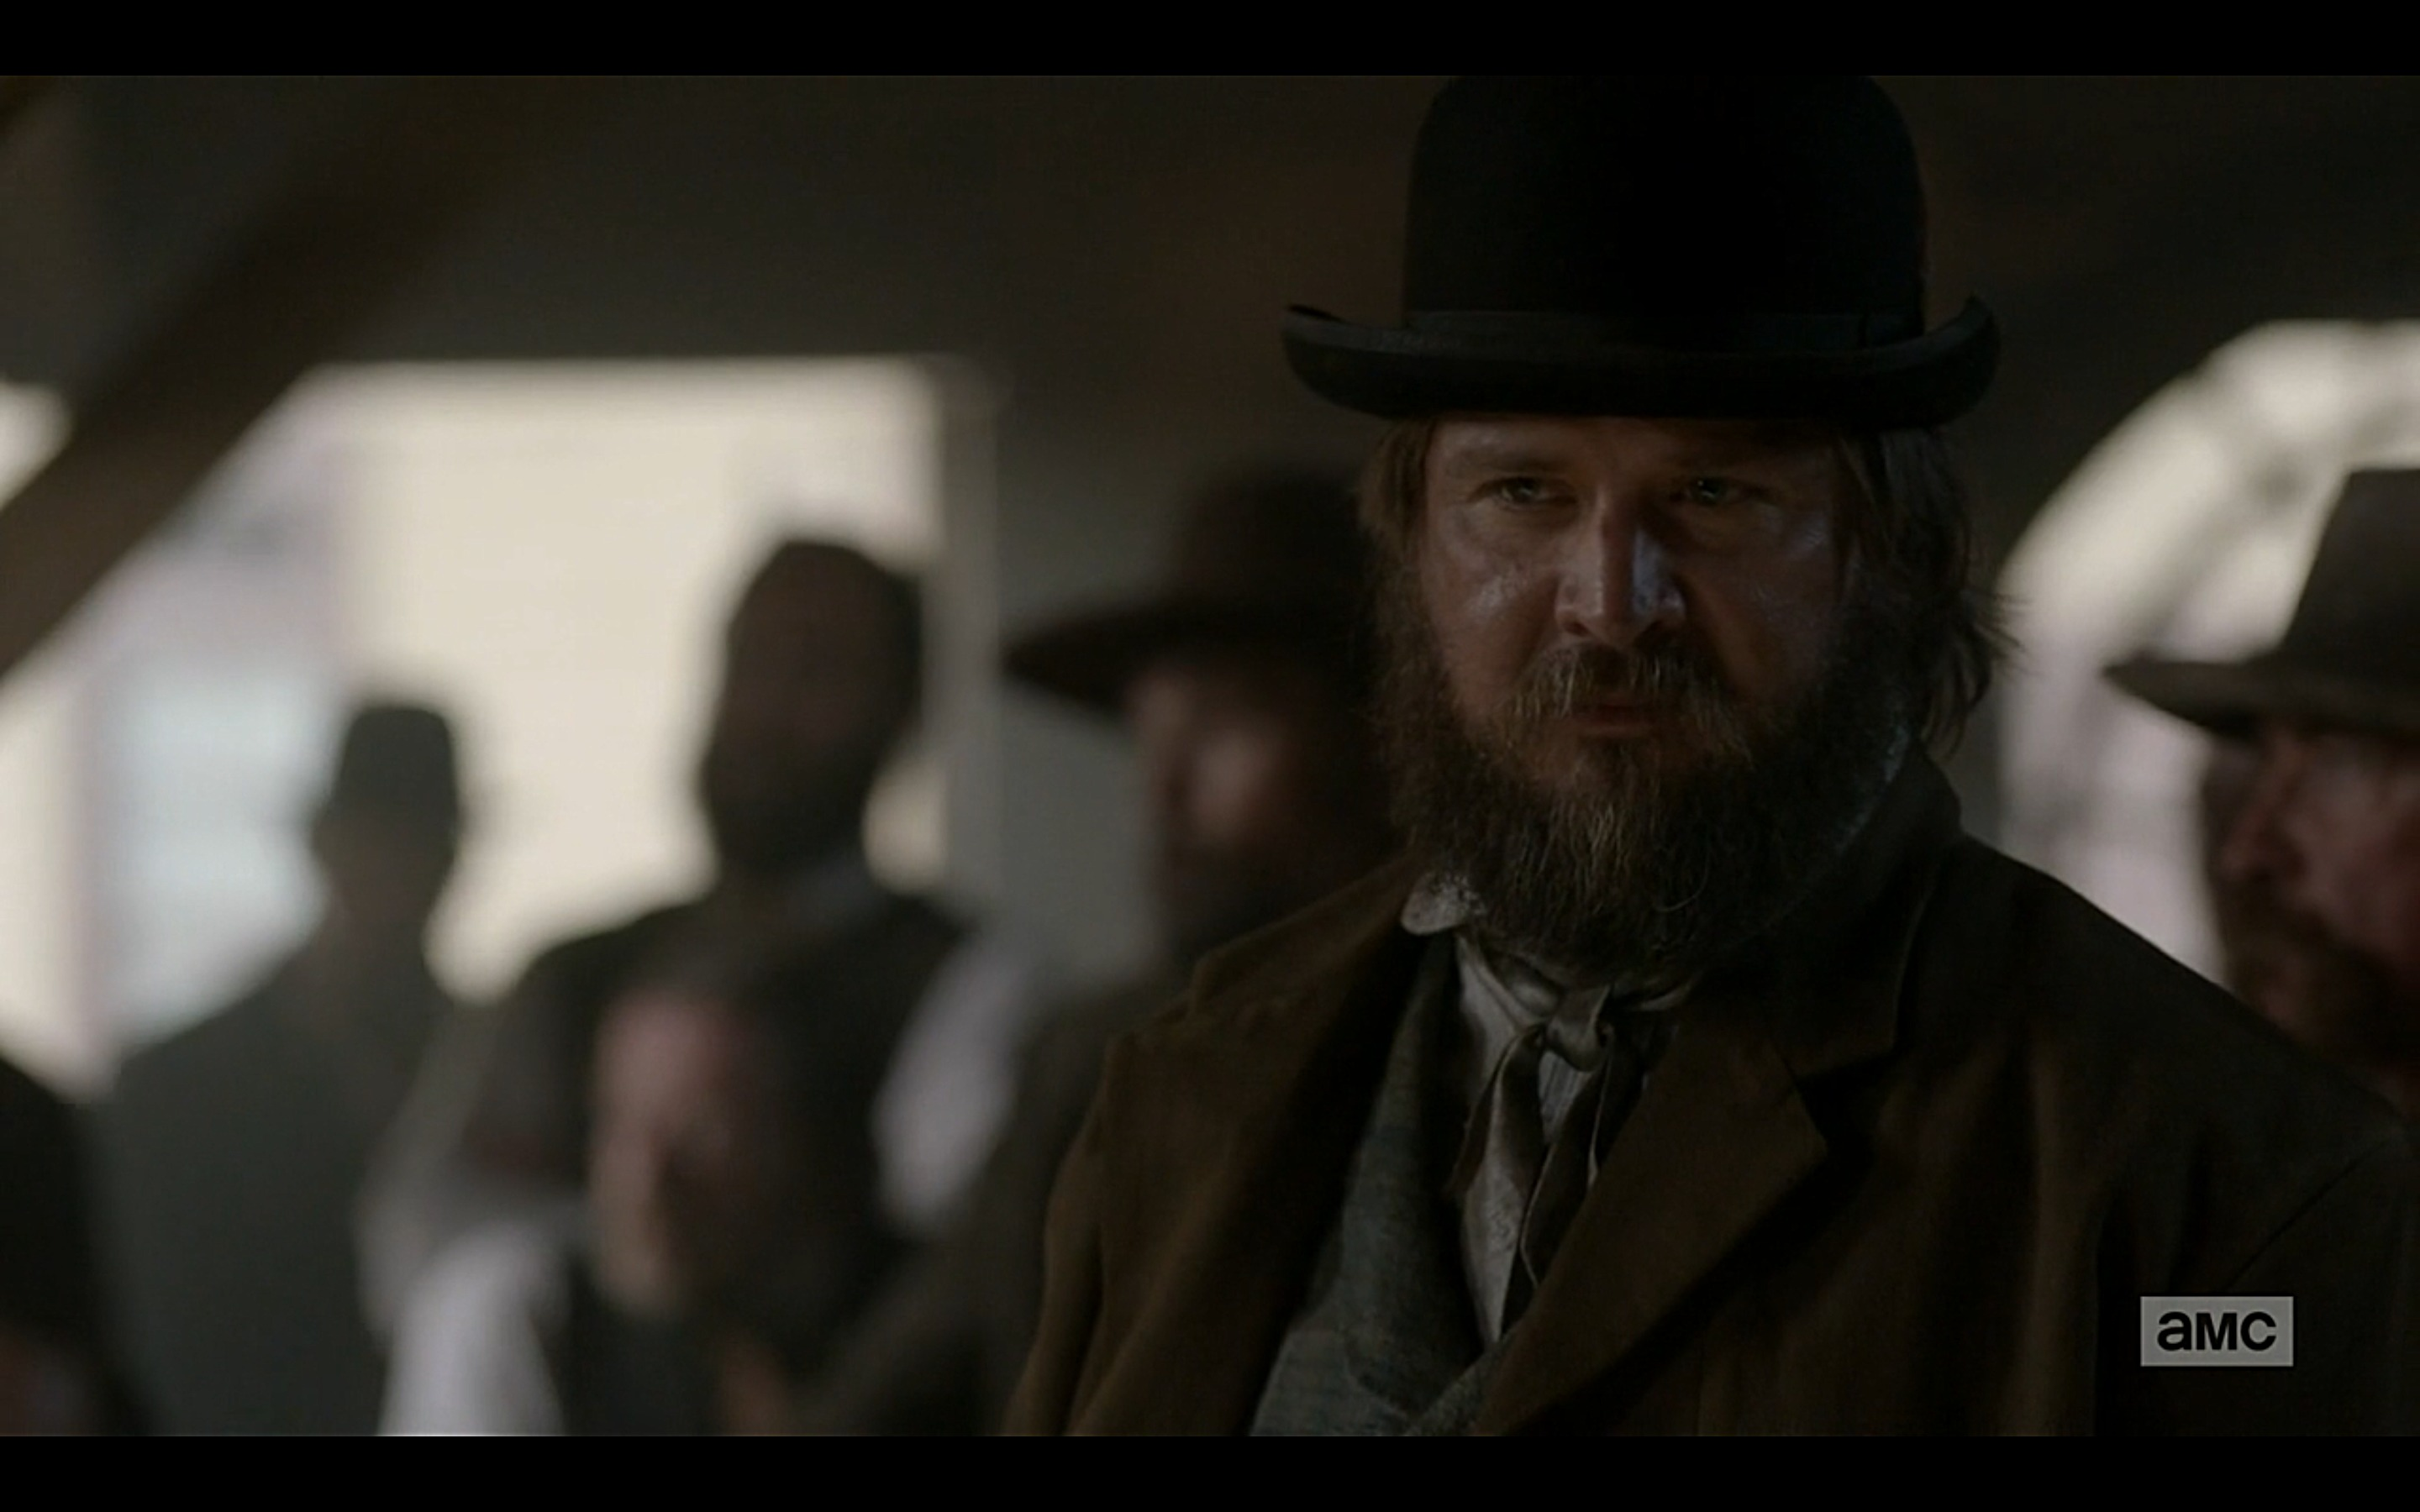 Staring down #KevinBlatch aka Judge Webber after confronting him and John Campbell in the casino. We're taking over. #deadrabbits #hellonwheels episode 4.11 #bleedingkansas